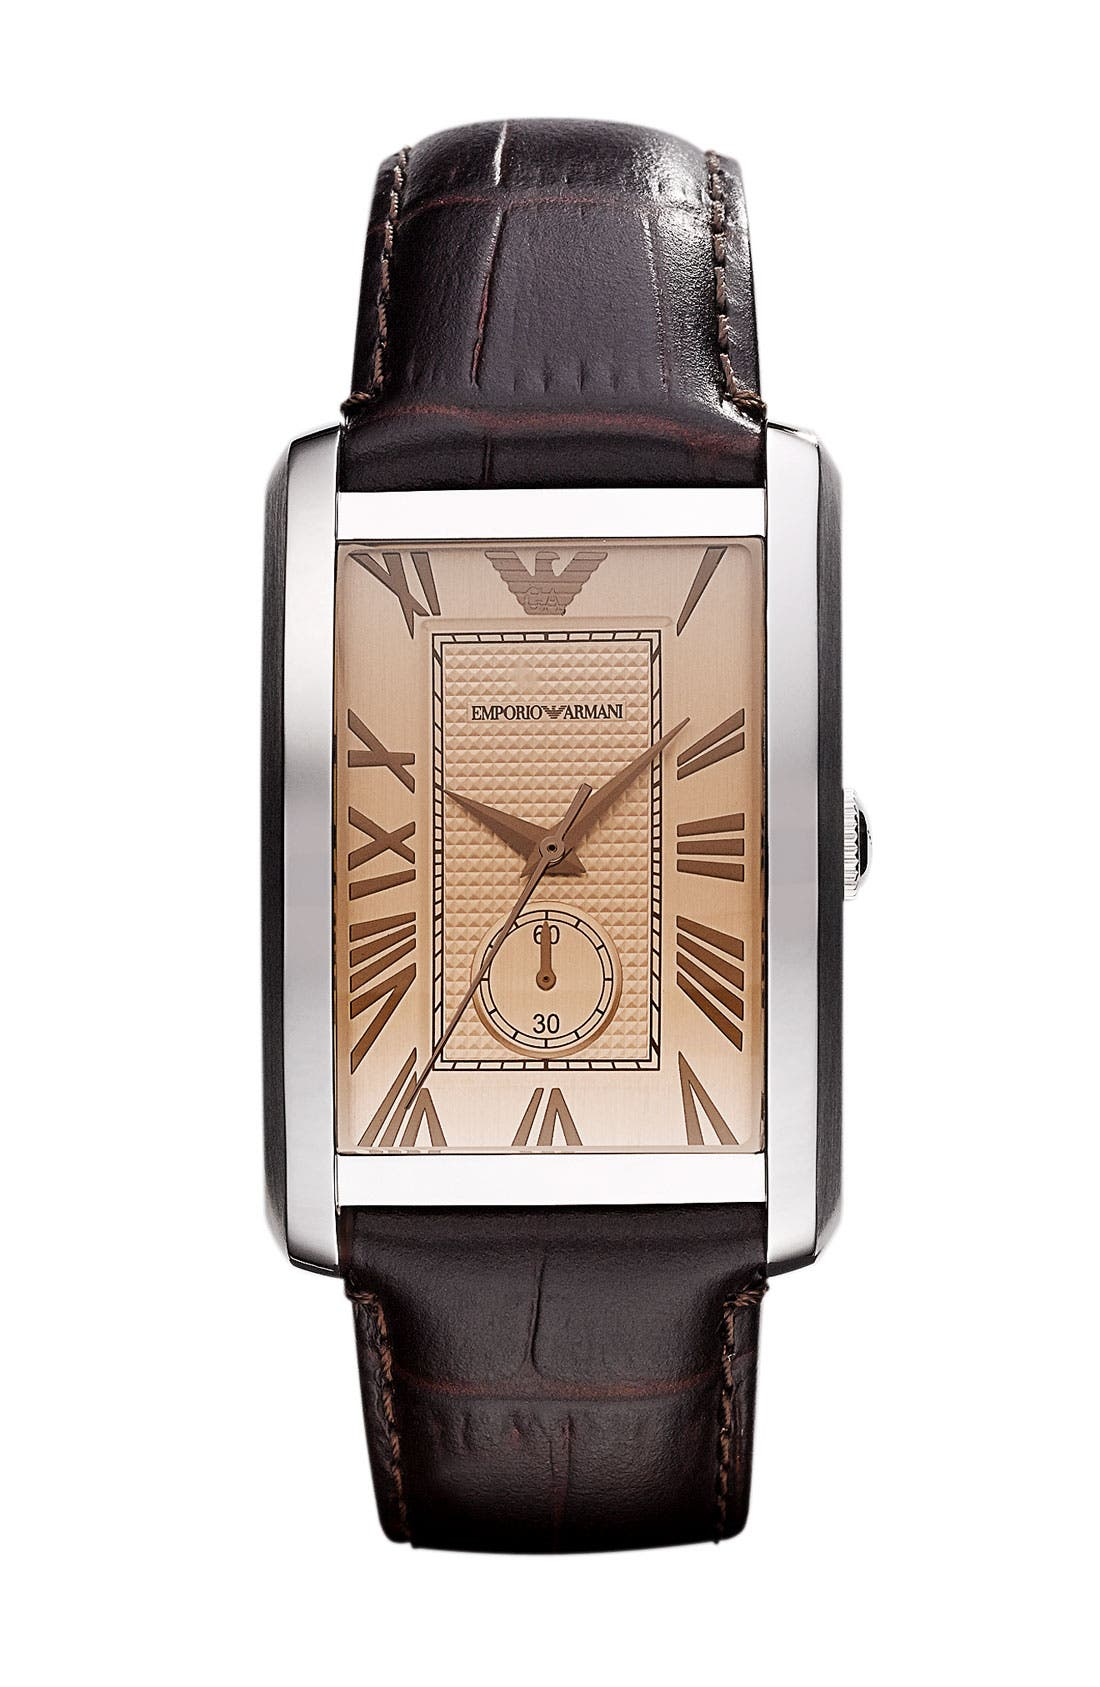 Alternate Image 1 Selected - Emporio Armani 'Classic - Large' Rectangular Dial Watch, 31mm x 39mm